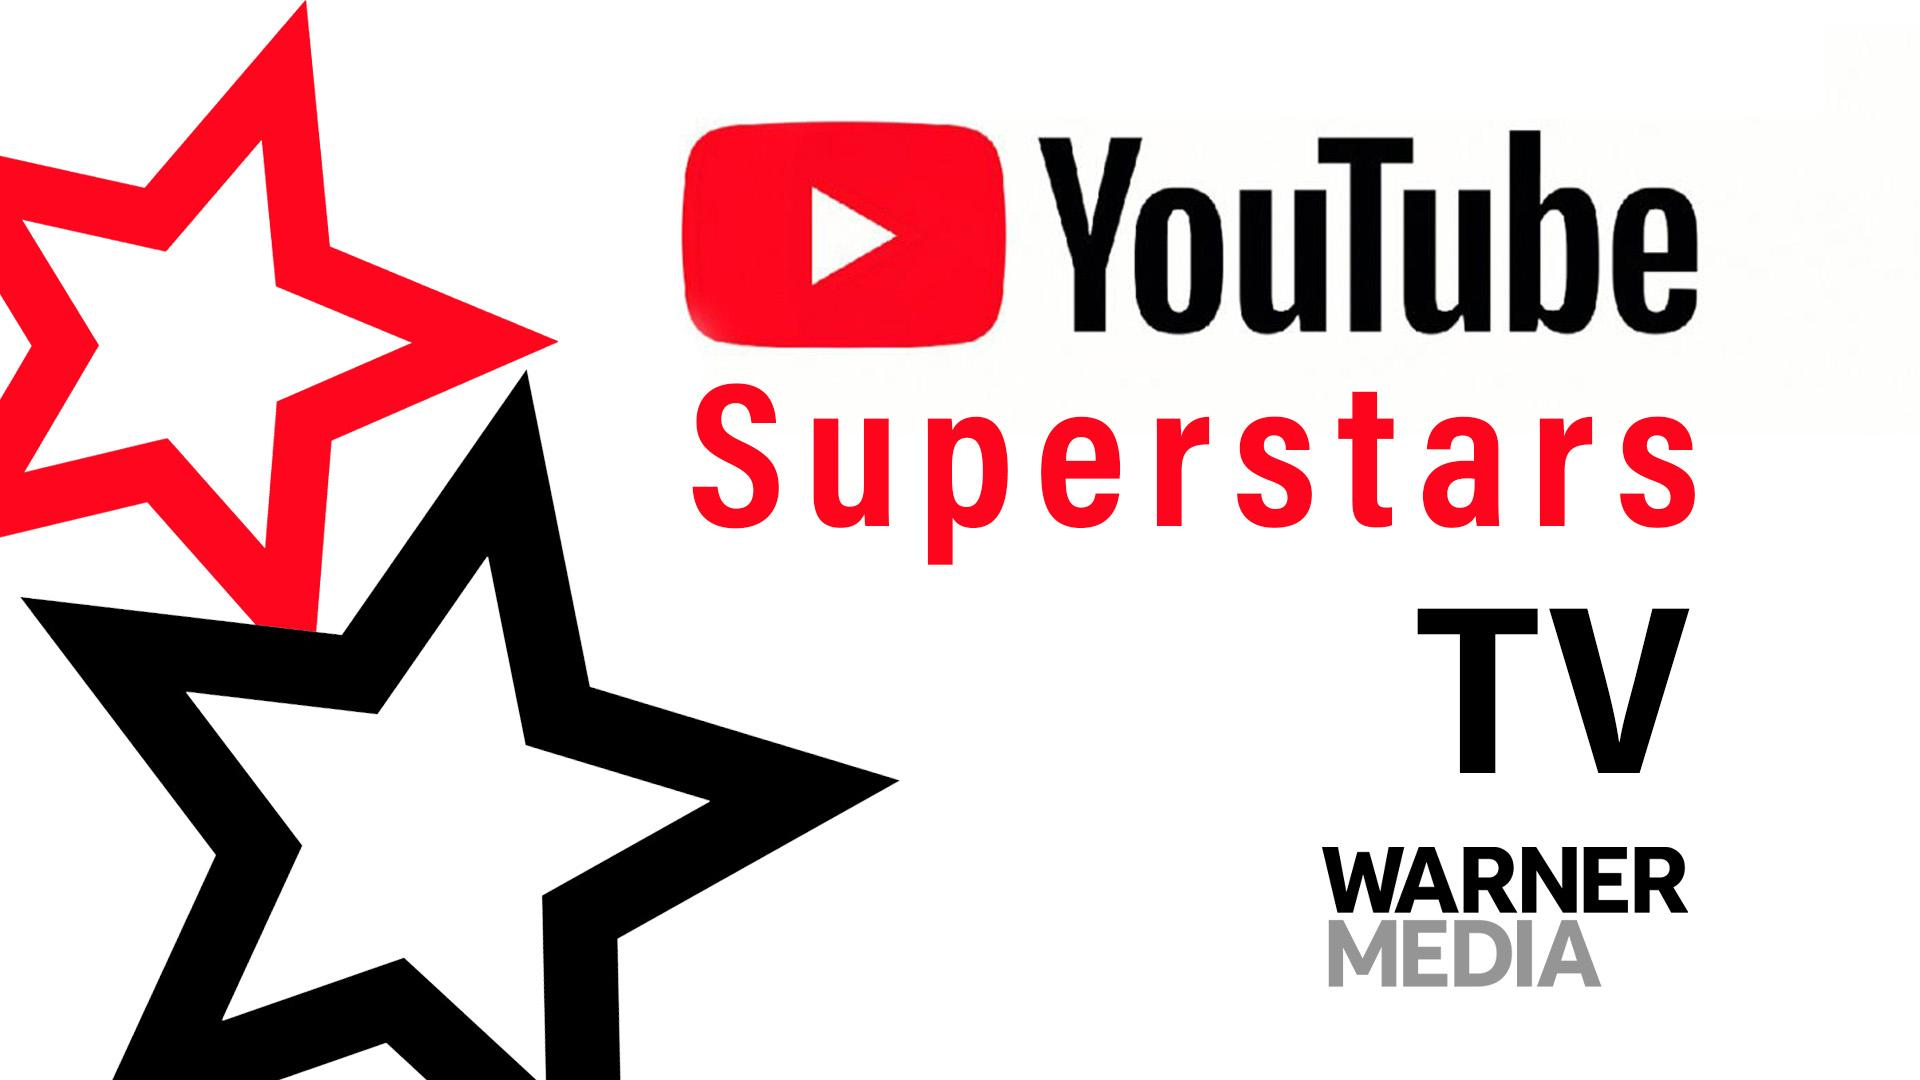 YouTube Superstars thumbnail